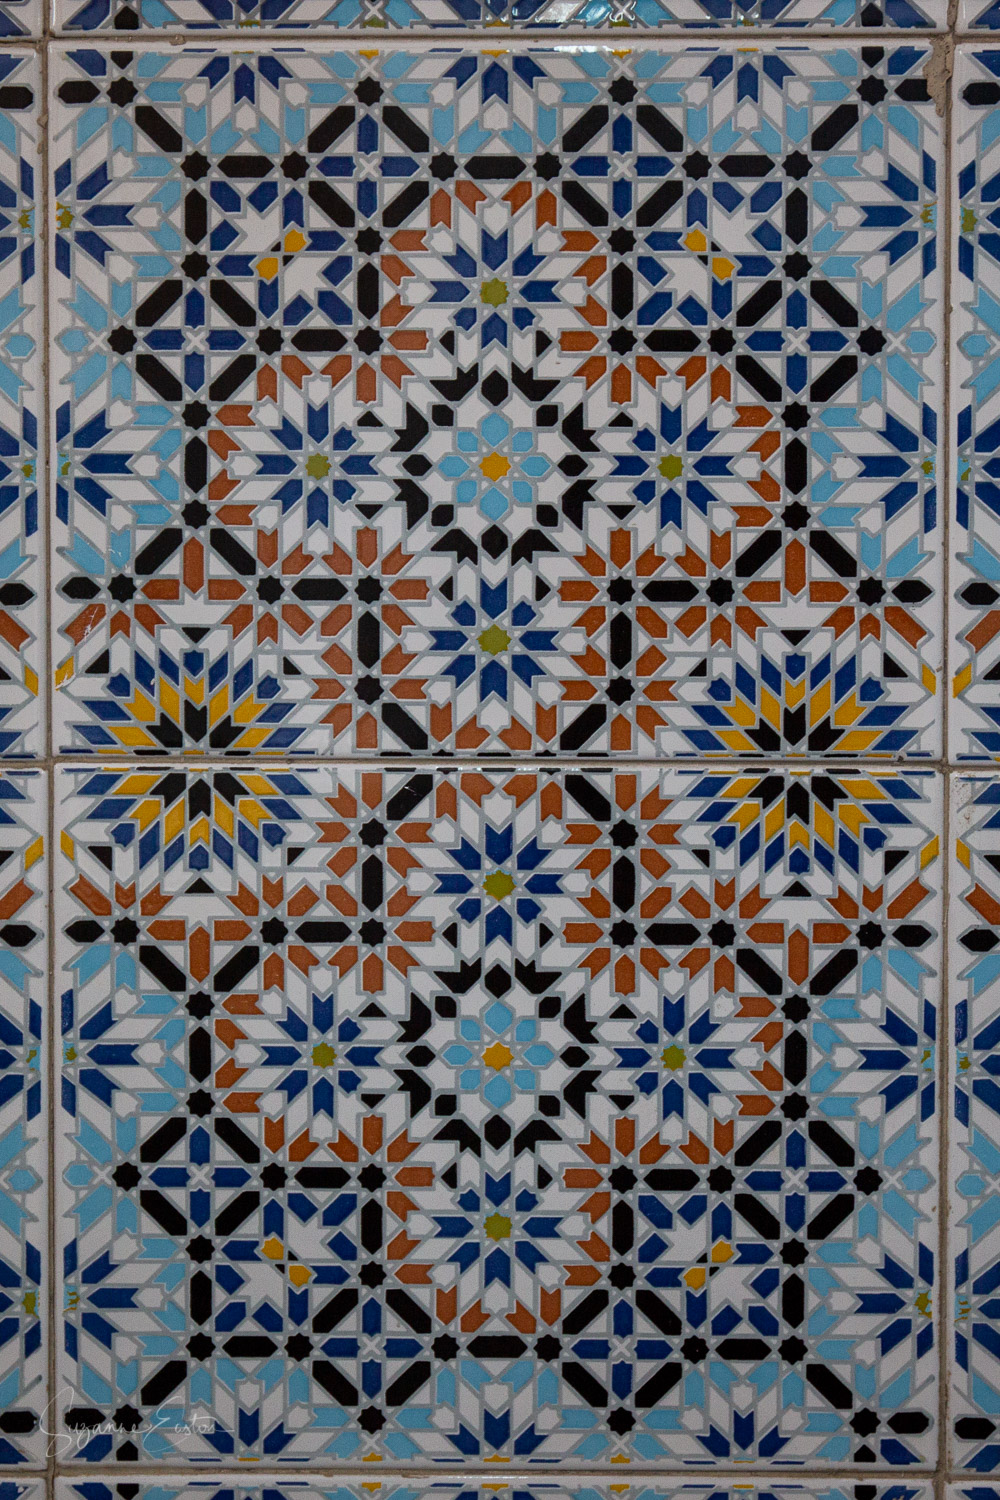 Tiles in Lazama Synagogue in Marrakech